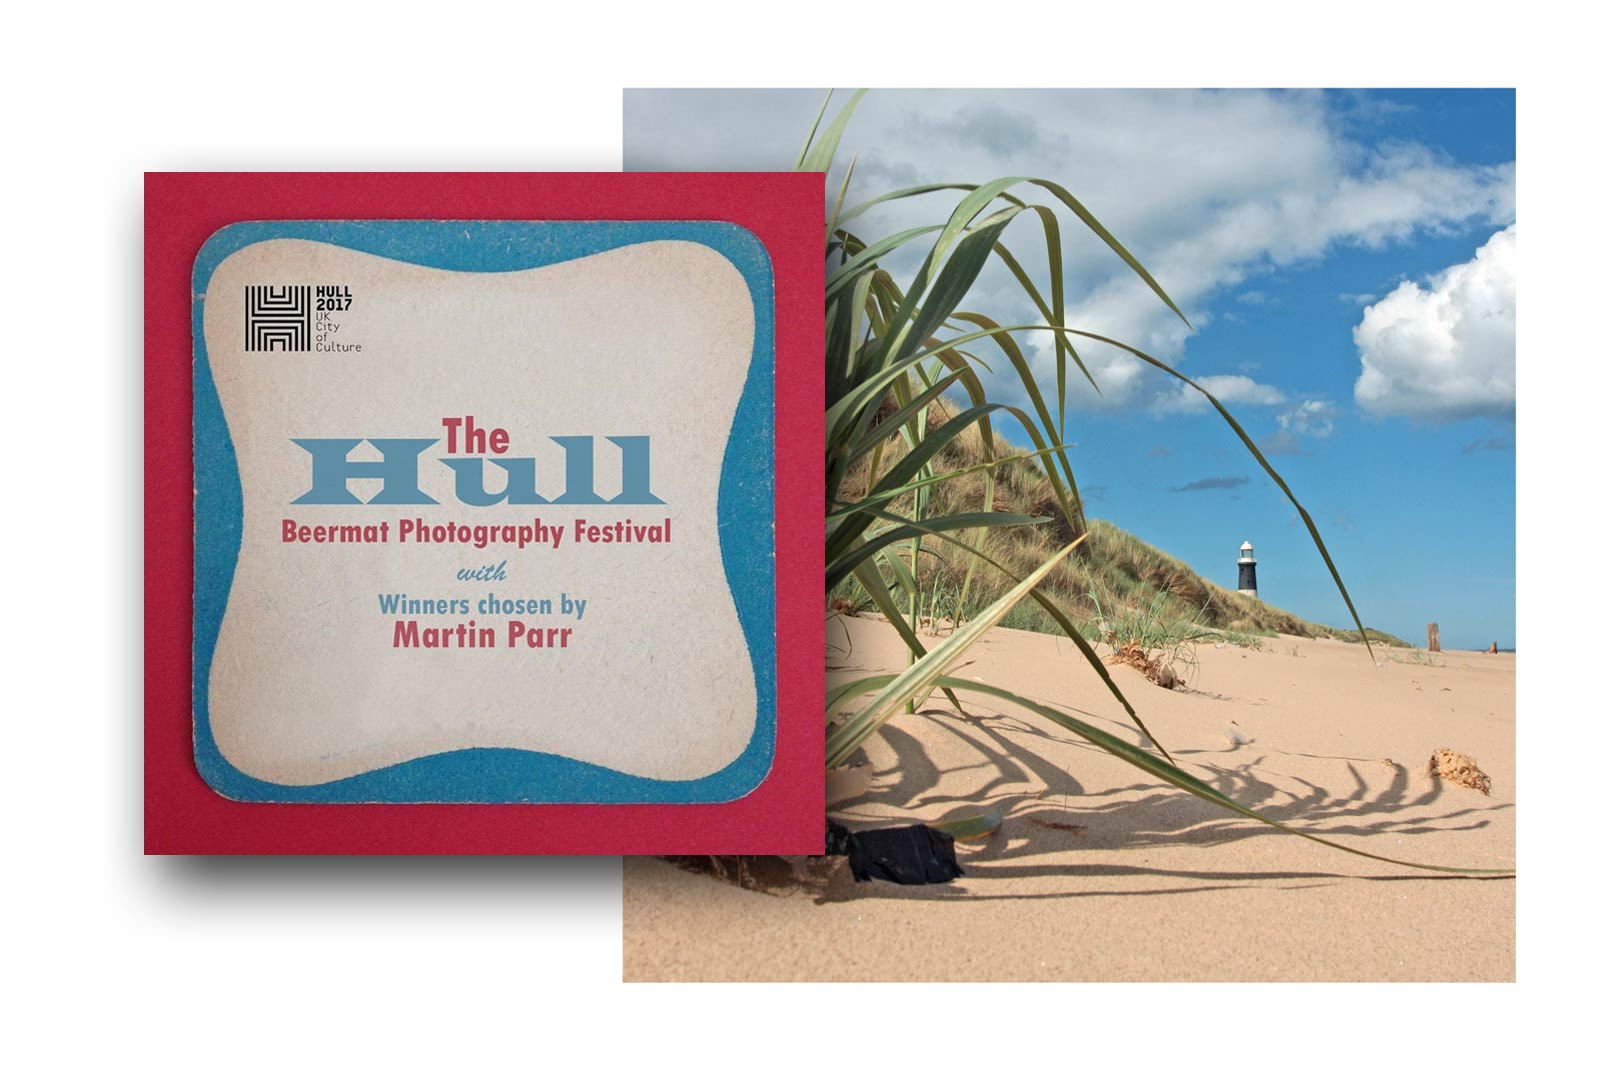 Hull Beermat Photography Festival Award Winner